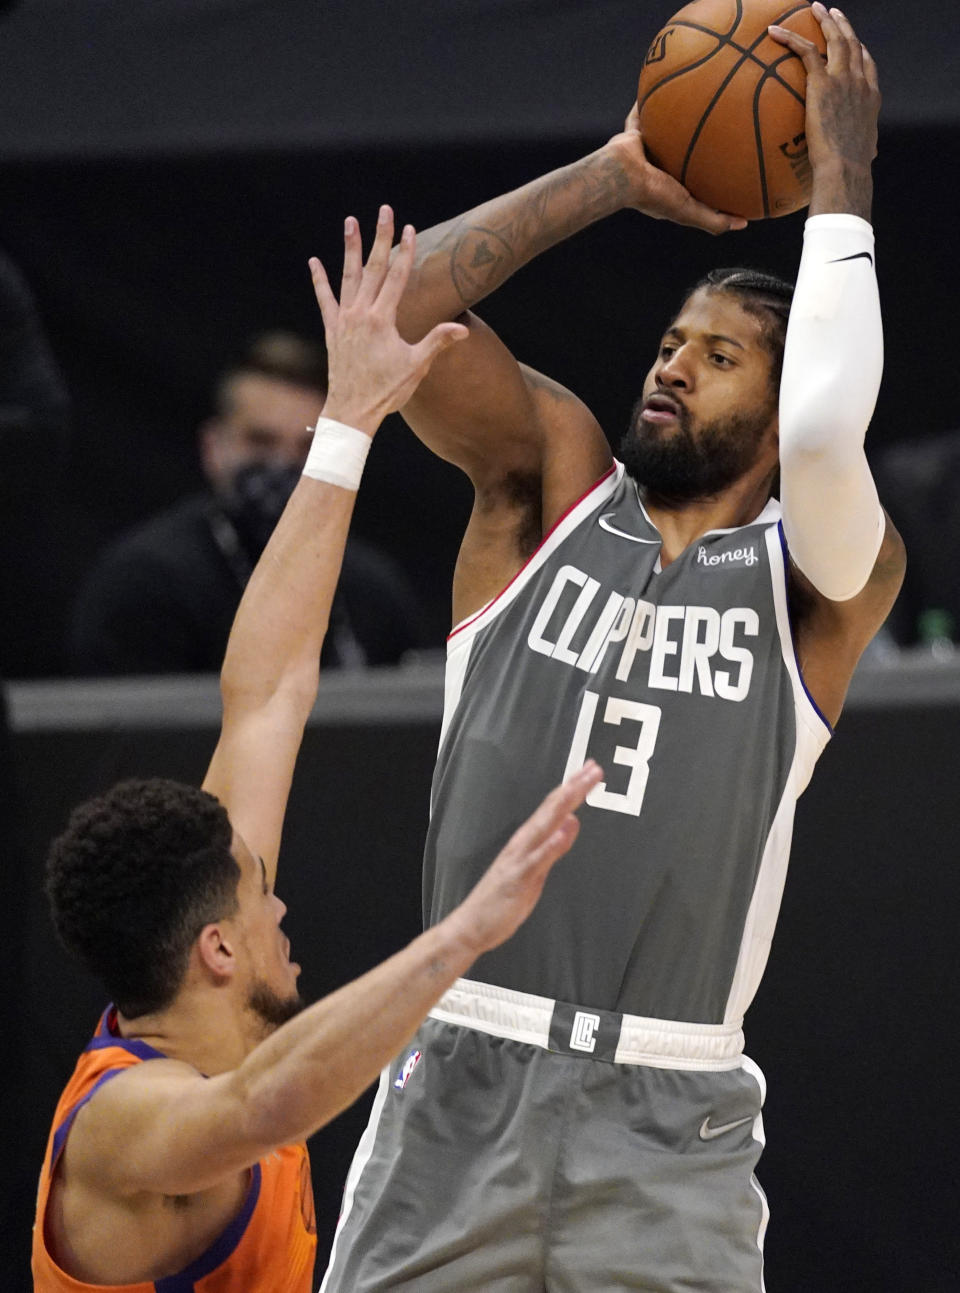 Los Angeles Clippers guard Paul George, right, shoots as Phoenix Suns guard Devin Booker defends during the second half in Game 4 of the NBA basketball Western Conference Finals Saturday, June 26, 2021, in Los Angeles. (AP Photo/Mark J. Terrill)